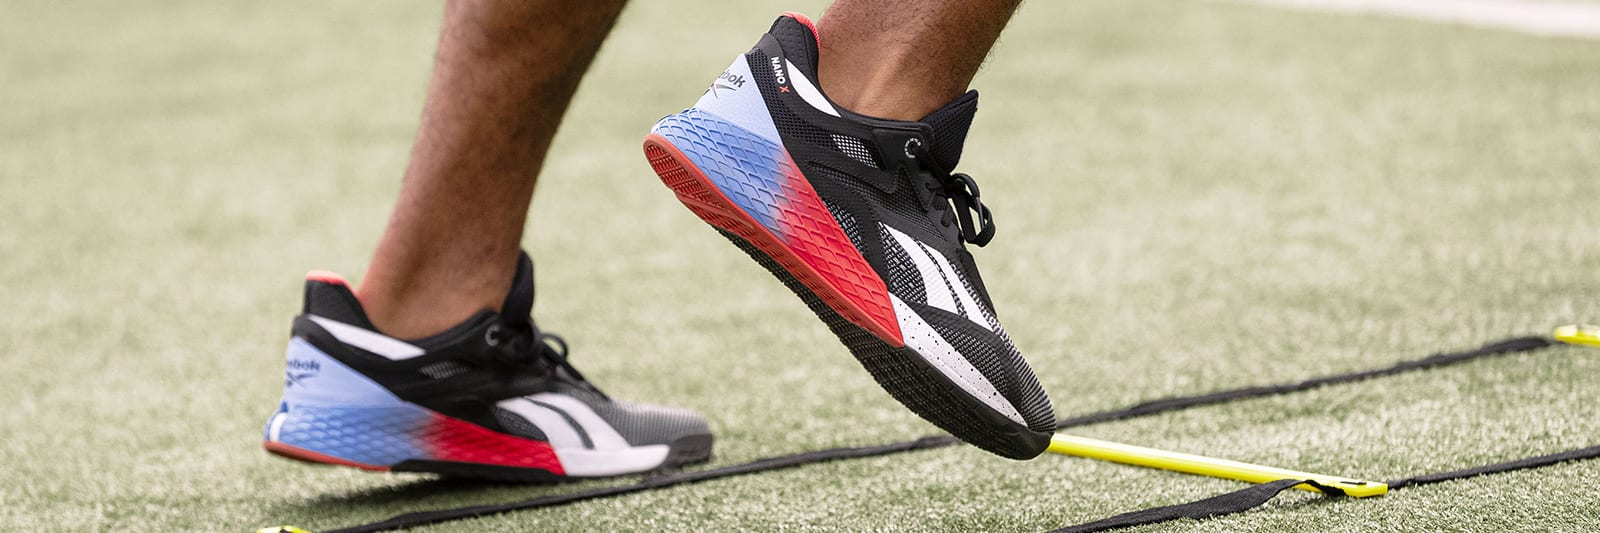 The Best Cross training Shoes for Men 2020